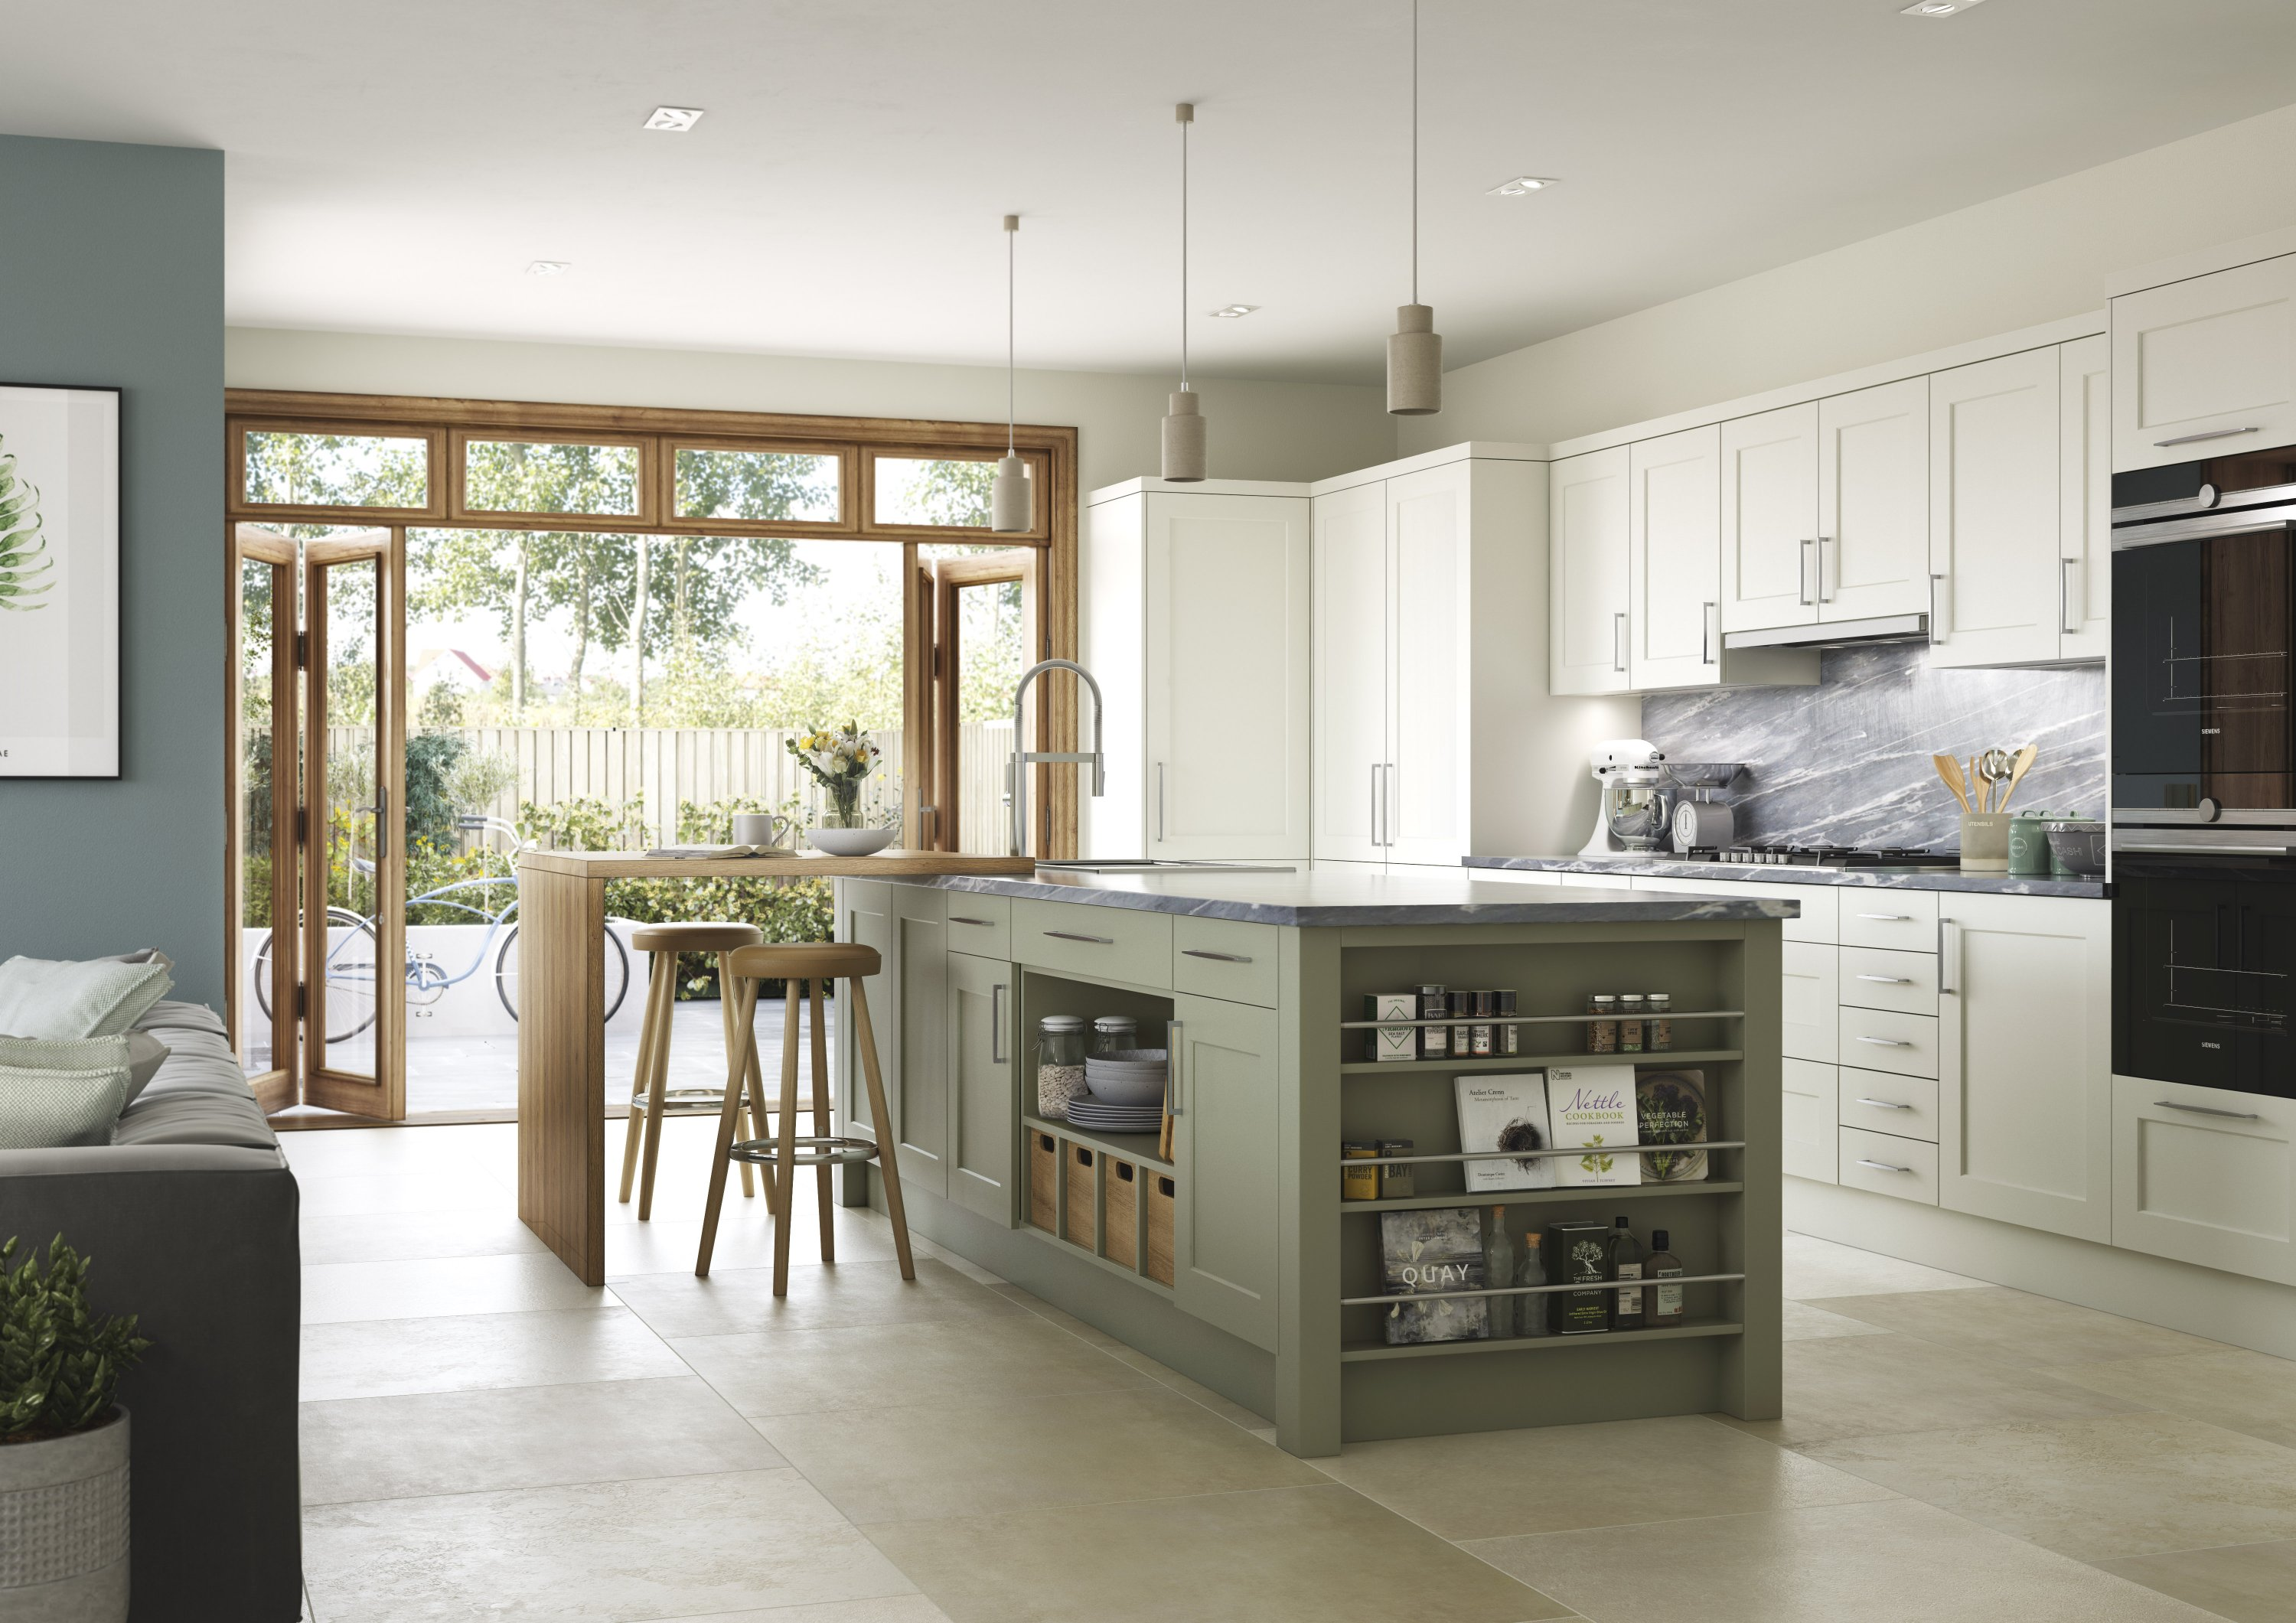 Relaxed Easy Living From Mereway Kitchens - Roman Bathrooms